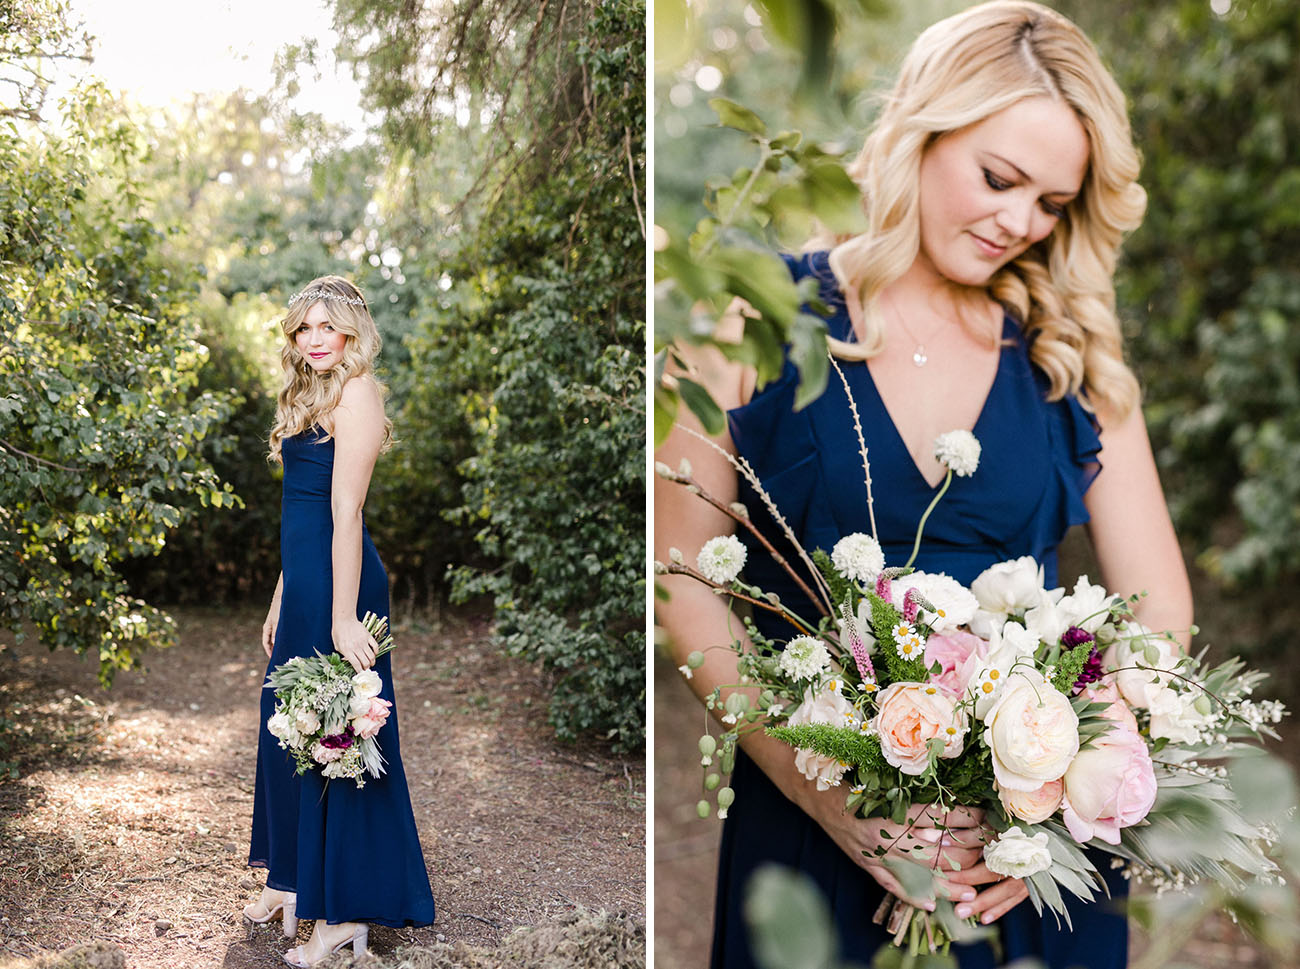 Reverie Spring 2018 Bridesmaids Collection from David's Bridal